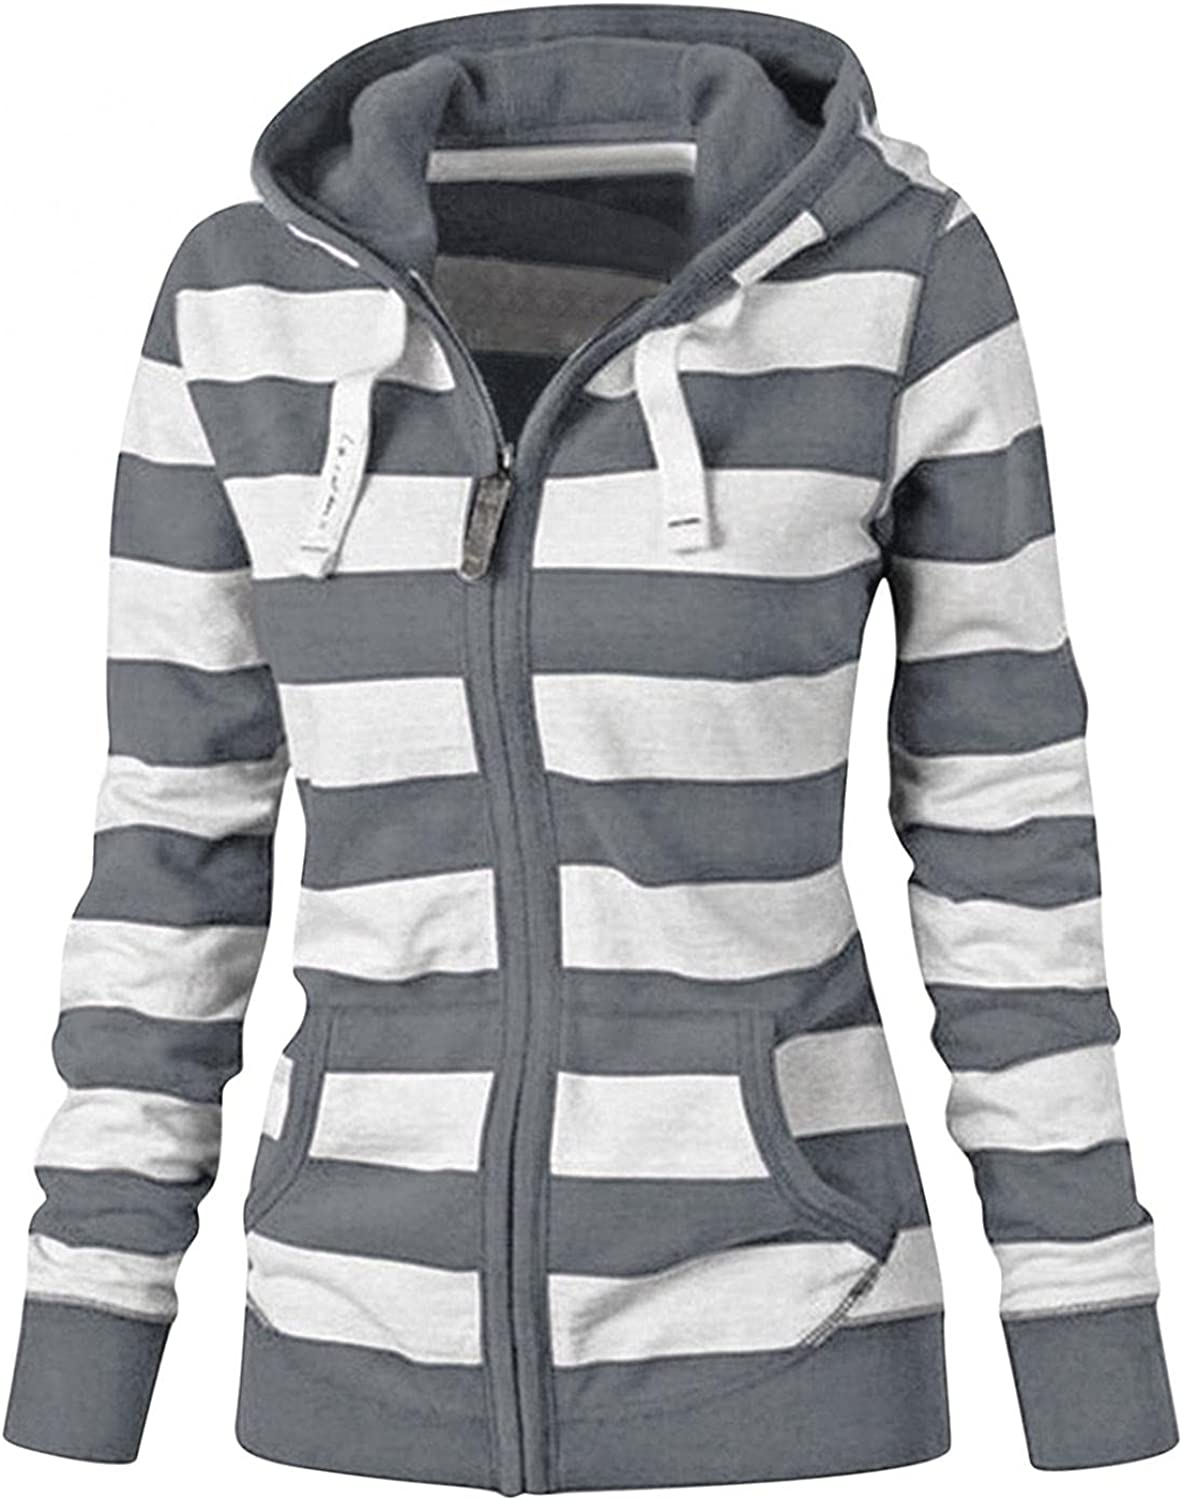 Sweaters for Women Hoodies, Womens Zip-Up Hoodie Long Sleeve Striped Lightweight Pullover Tops Casual Blouses with Pockets